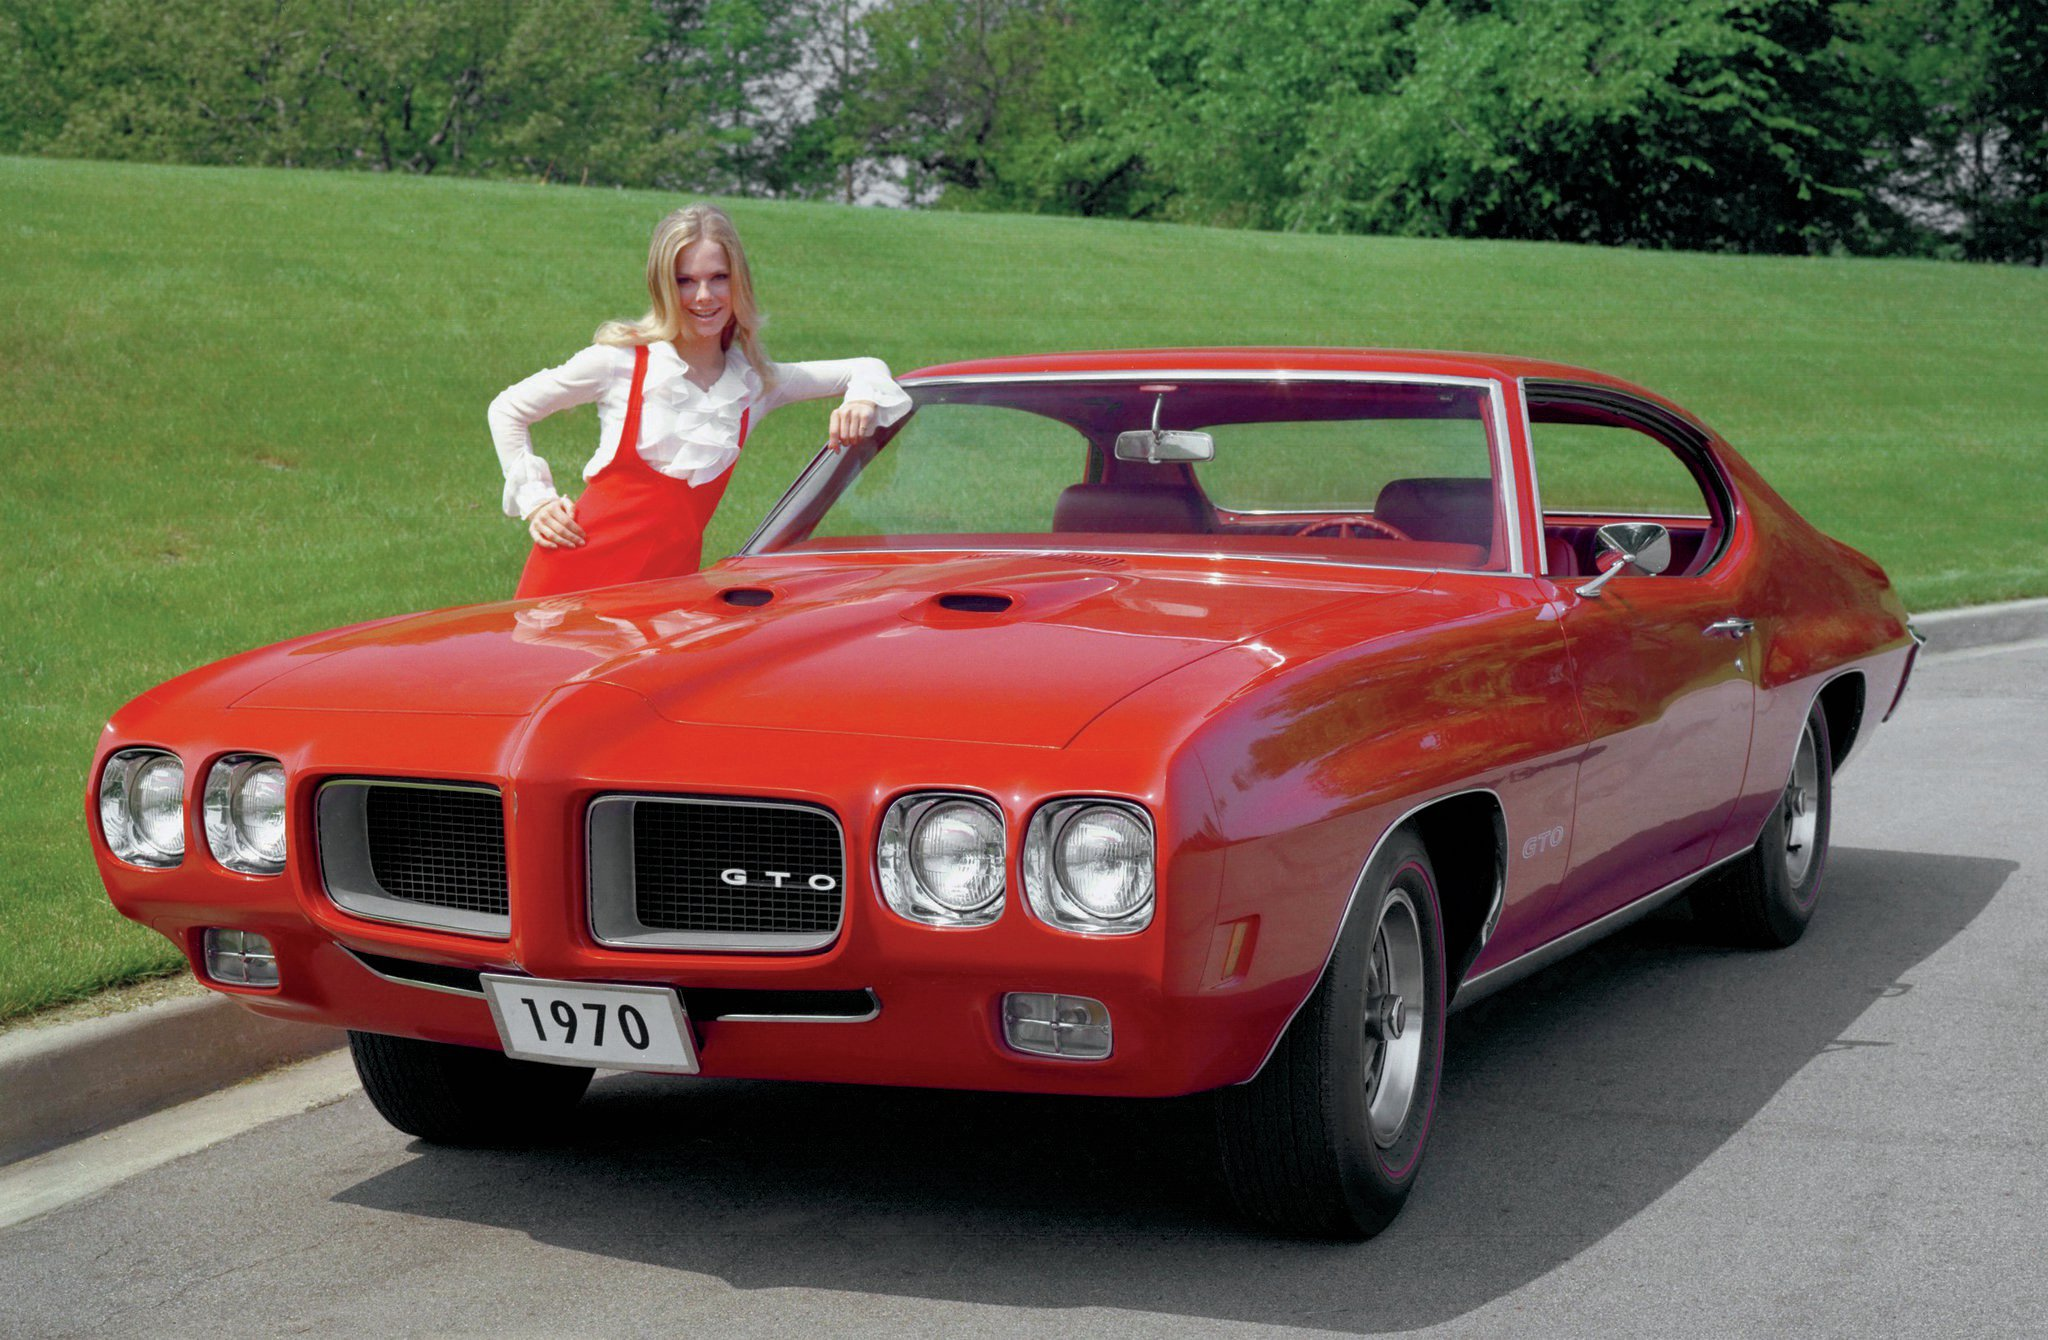 The '70 GTO's styling updates made it one of the most attractive muscle-car designs ever penned. A new Endura nose featured frenched quad headlamps and smaller grille openings. New eyebrow accents over the wheels and a wraparound rear-bumper design gave the GTO an even more aggressive appearance.